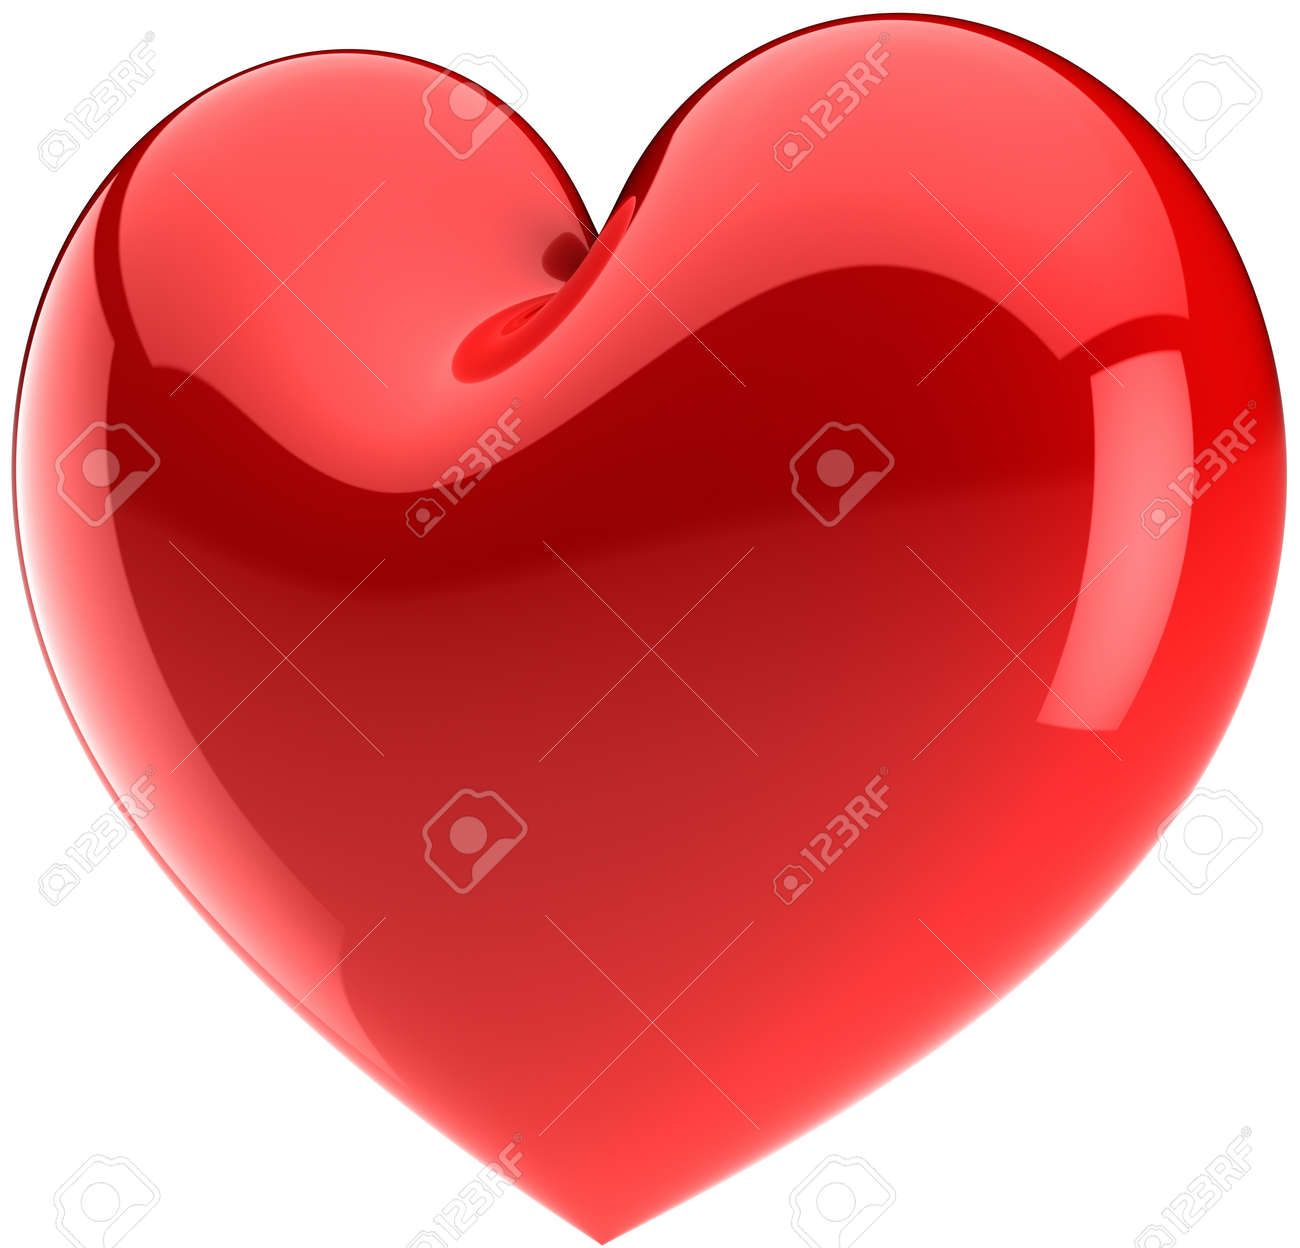 Red Heart Shape Love Symbol Classic Valentines Day Icon Concept